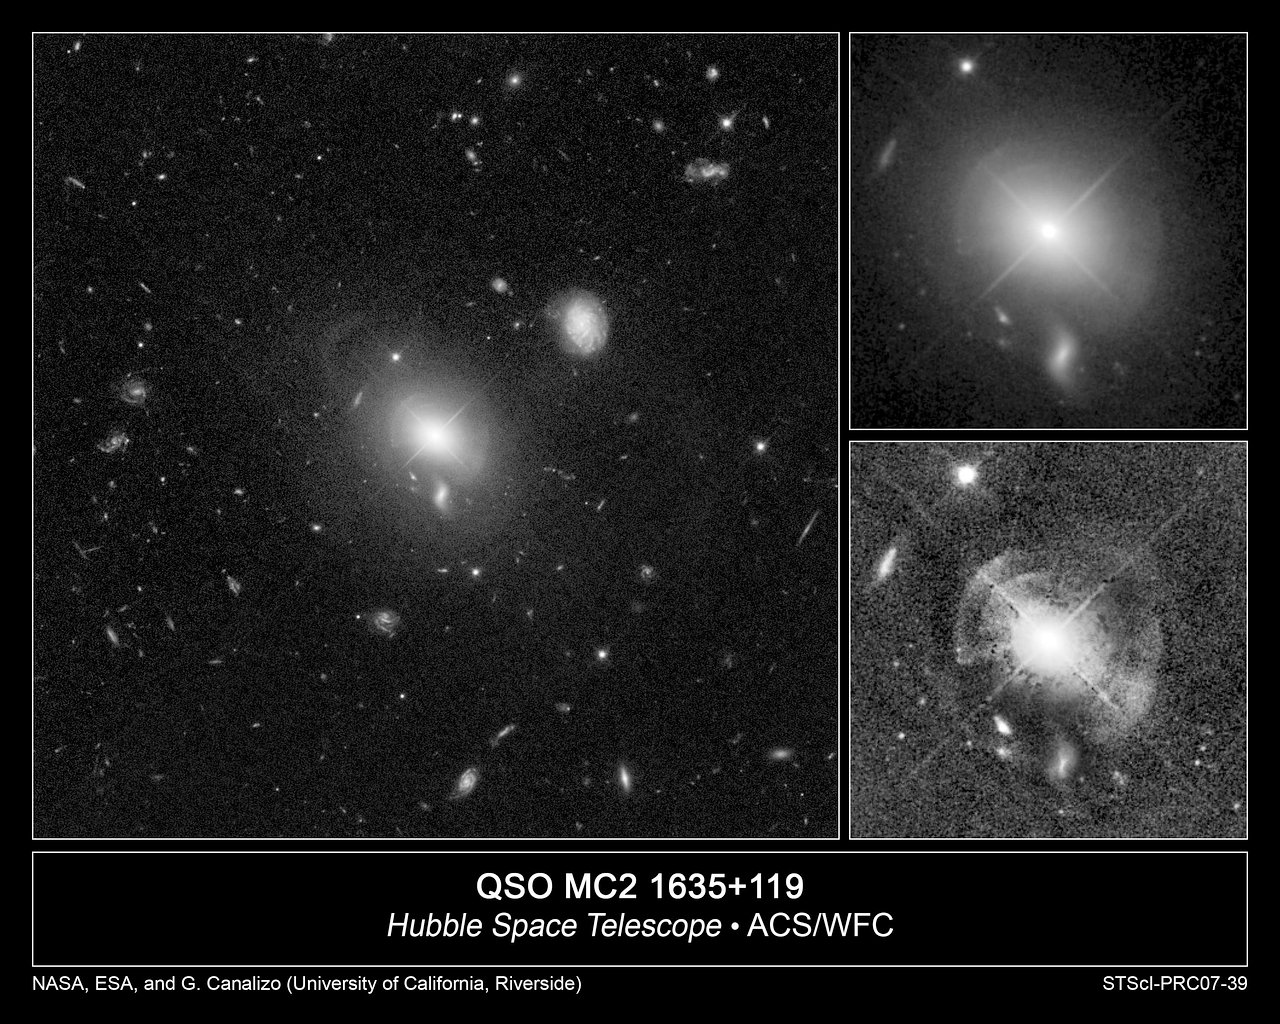 Hubble Spies Shells of Sparkling Stars Around Quasar